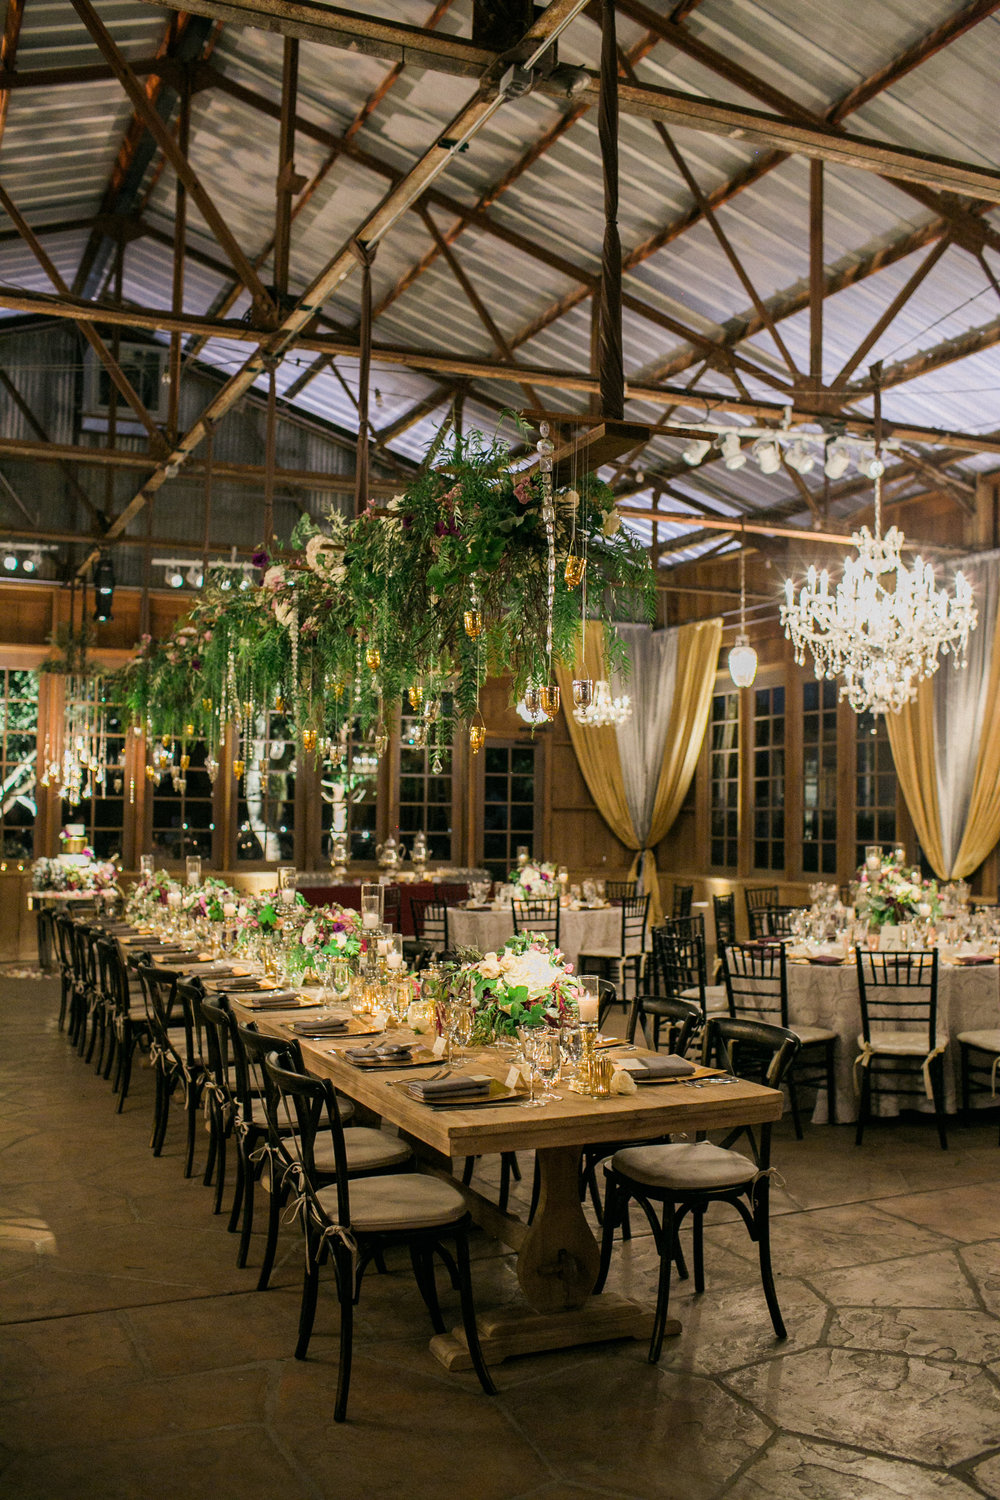 santabarbarawedding.com | SPARK Creative Events | Barn Lighting